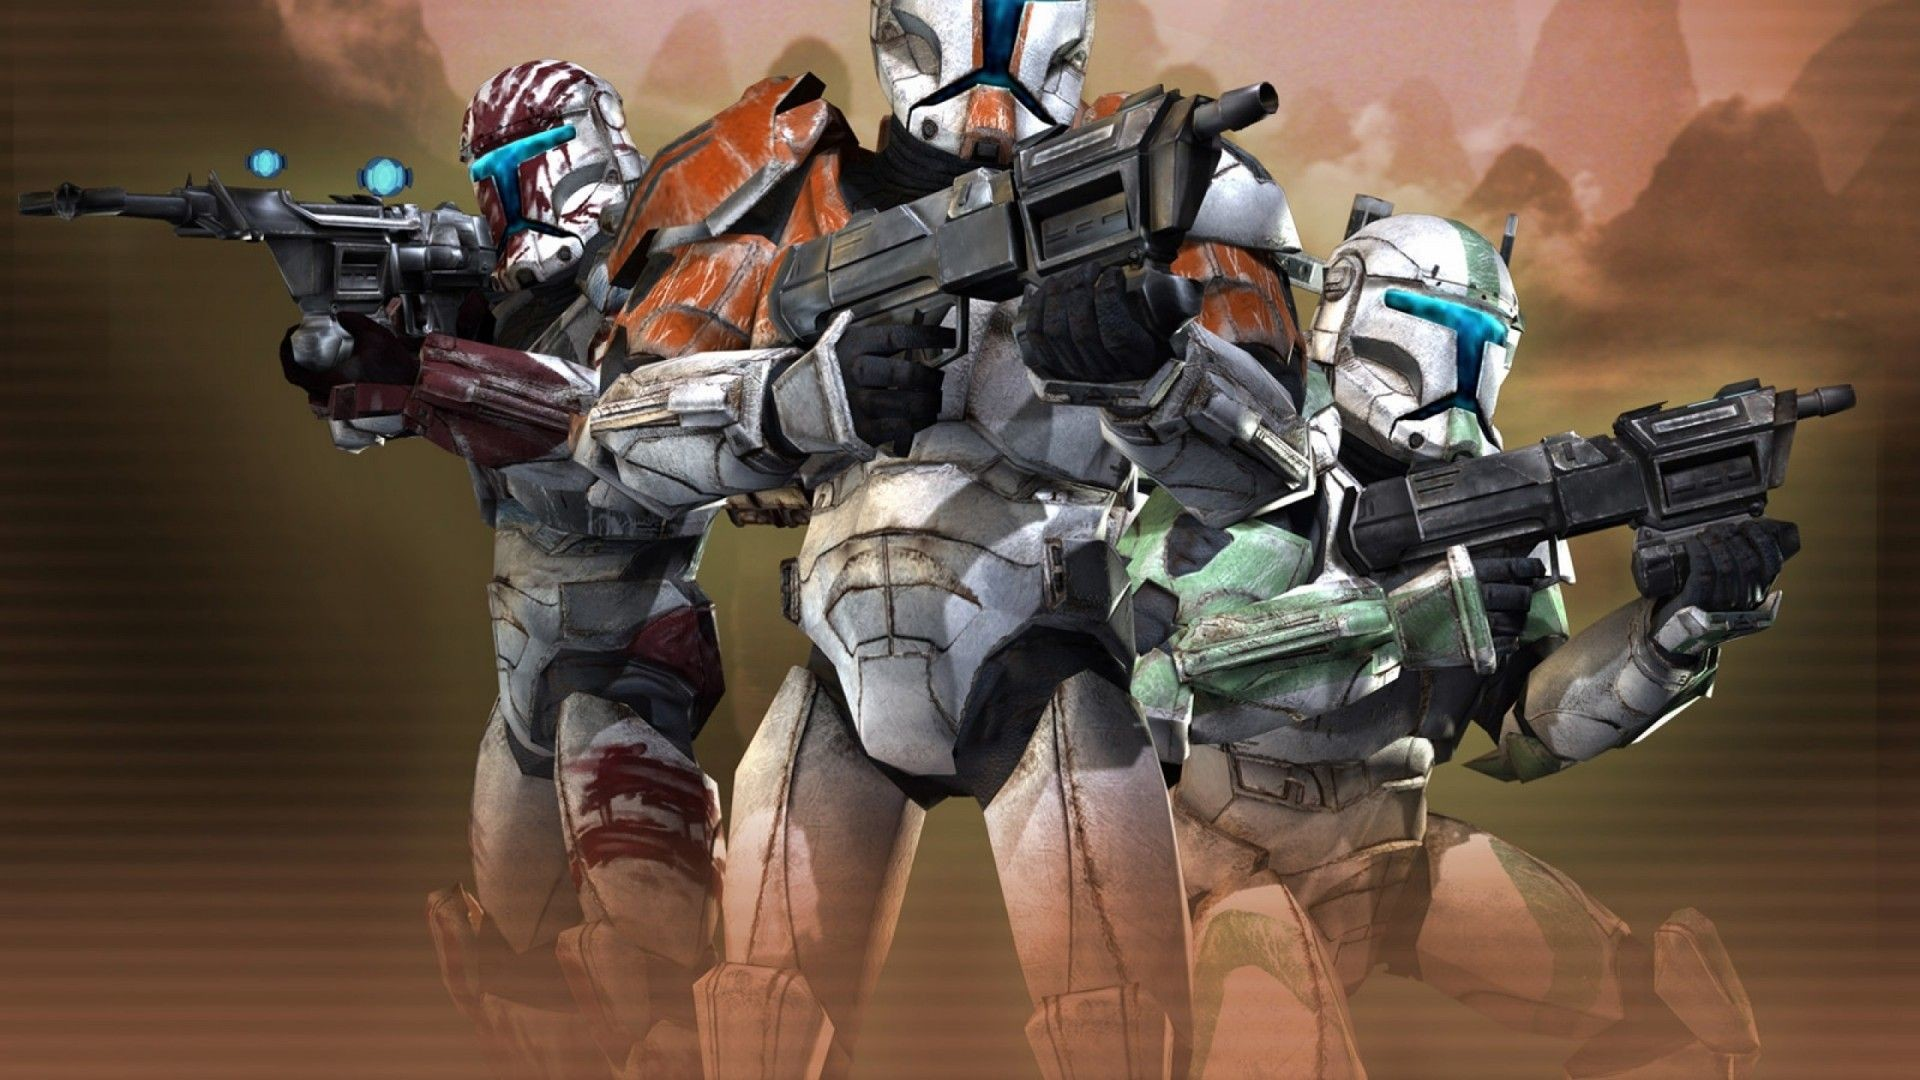 Star Wars Clone Wars Wallpapers Posted By Sarah Anderson